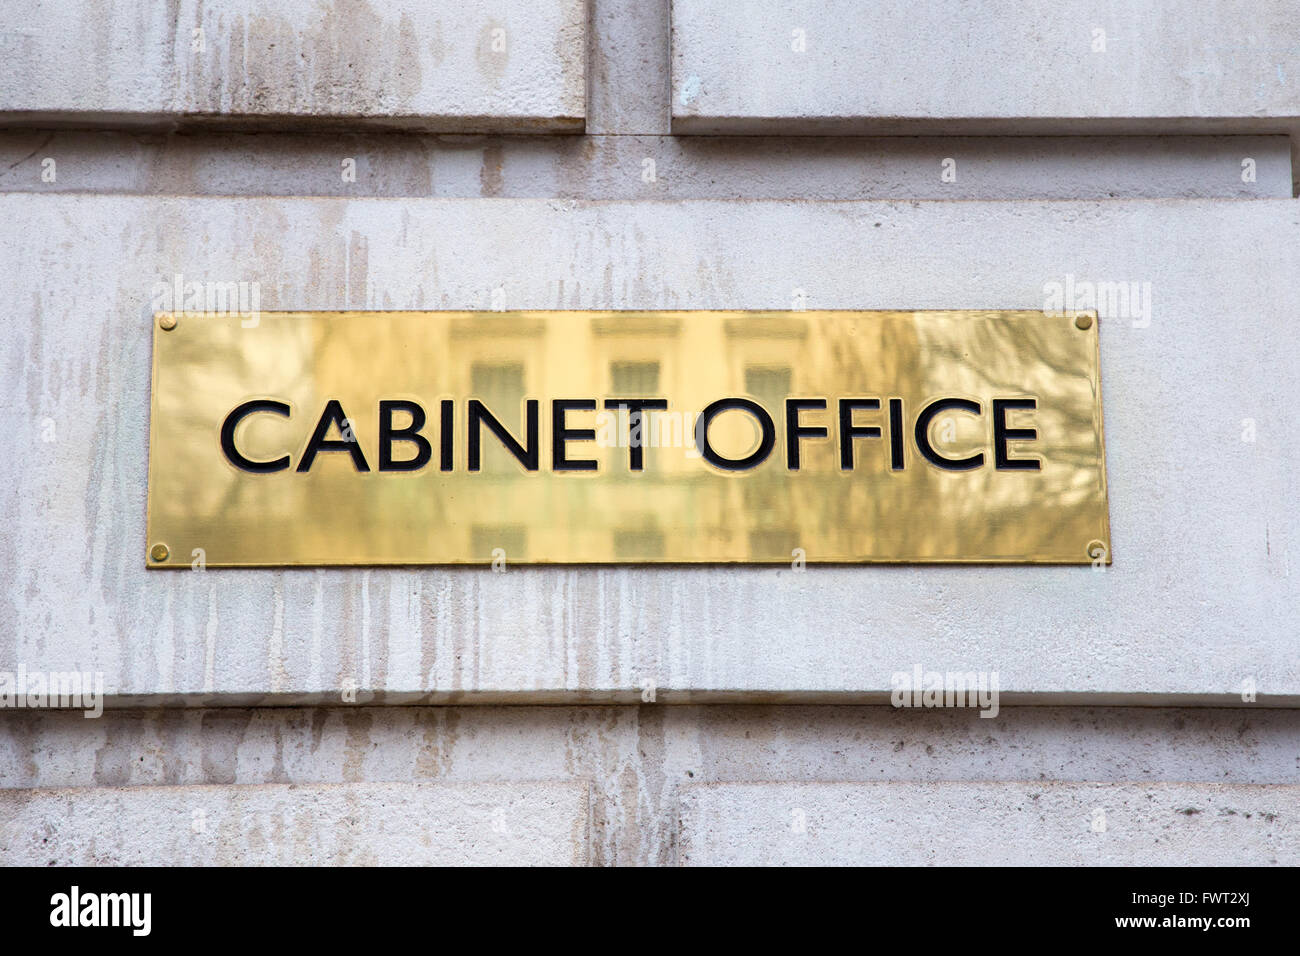 Cabinet Office sign in Whitehall, Westminster, London - Stock Image